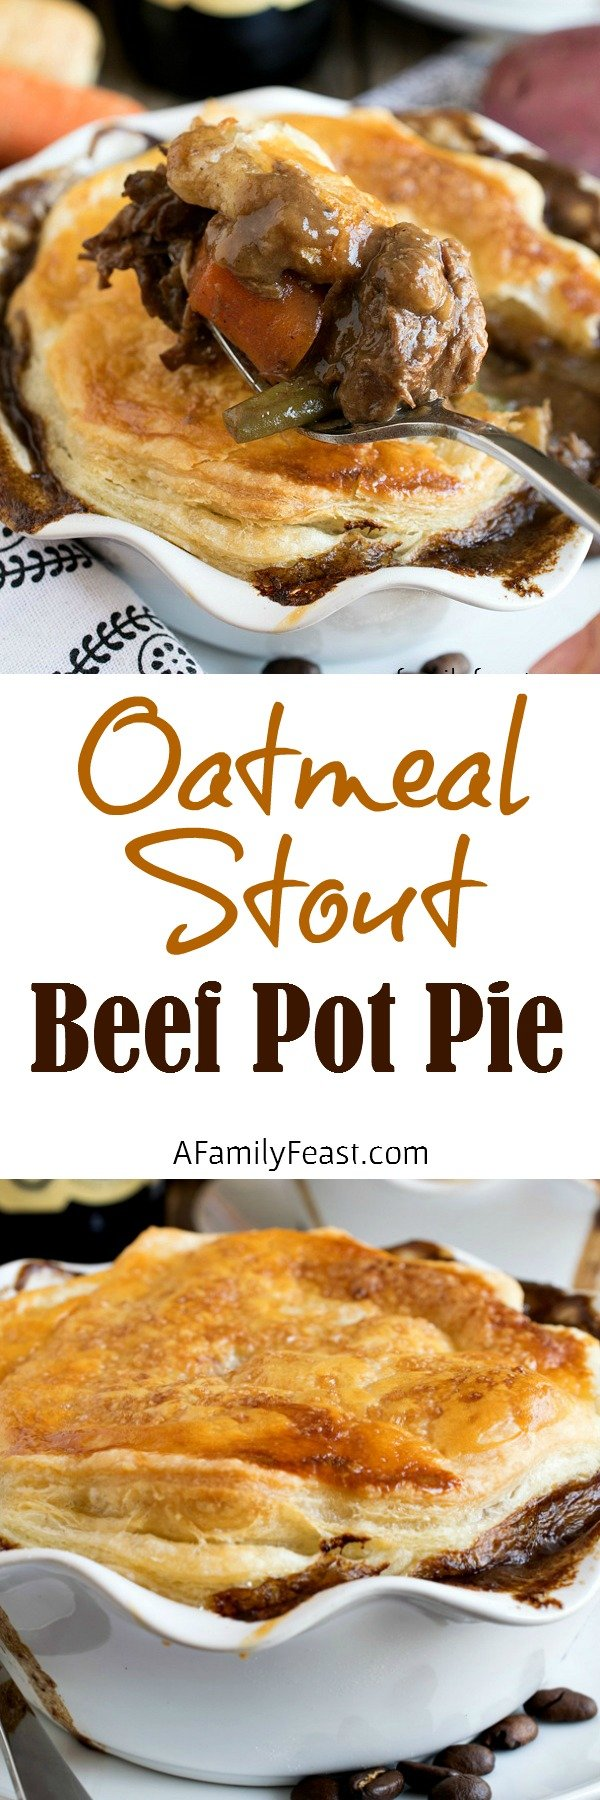 Oatmeal Stout Beef Pot Pie - A hearty and rich beef pot pie with a puff pastry top. Pure comfort food!